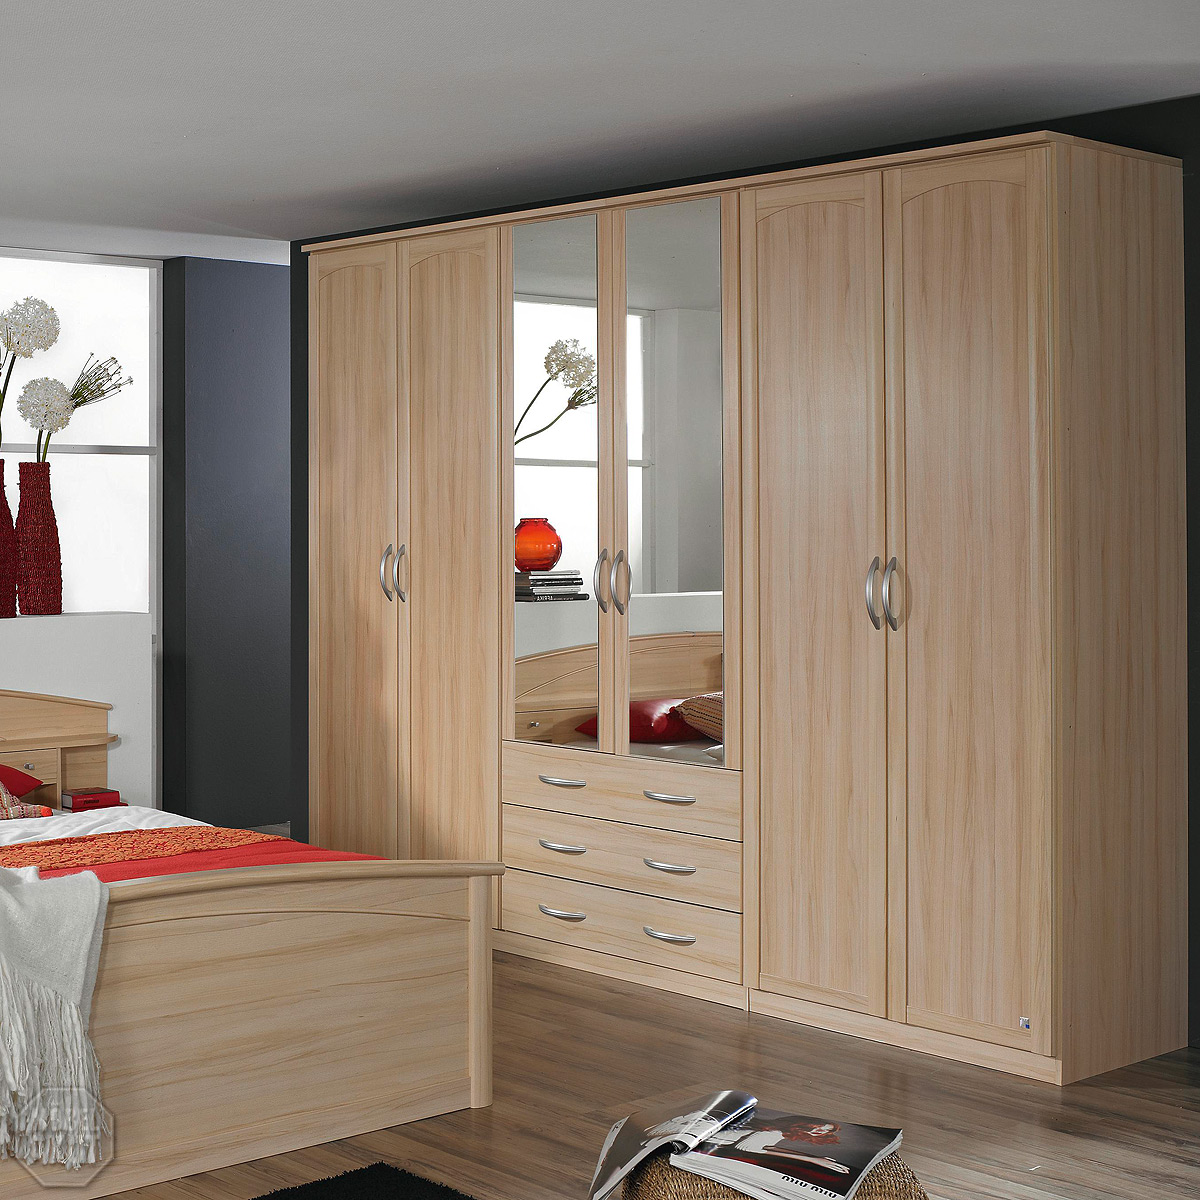 kleiderschrank catania schrank schlafzimmerschrank buche. Black Bedroom Furniture Sets. Home Design Ideas